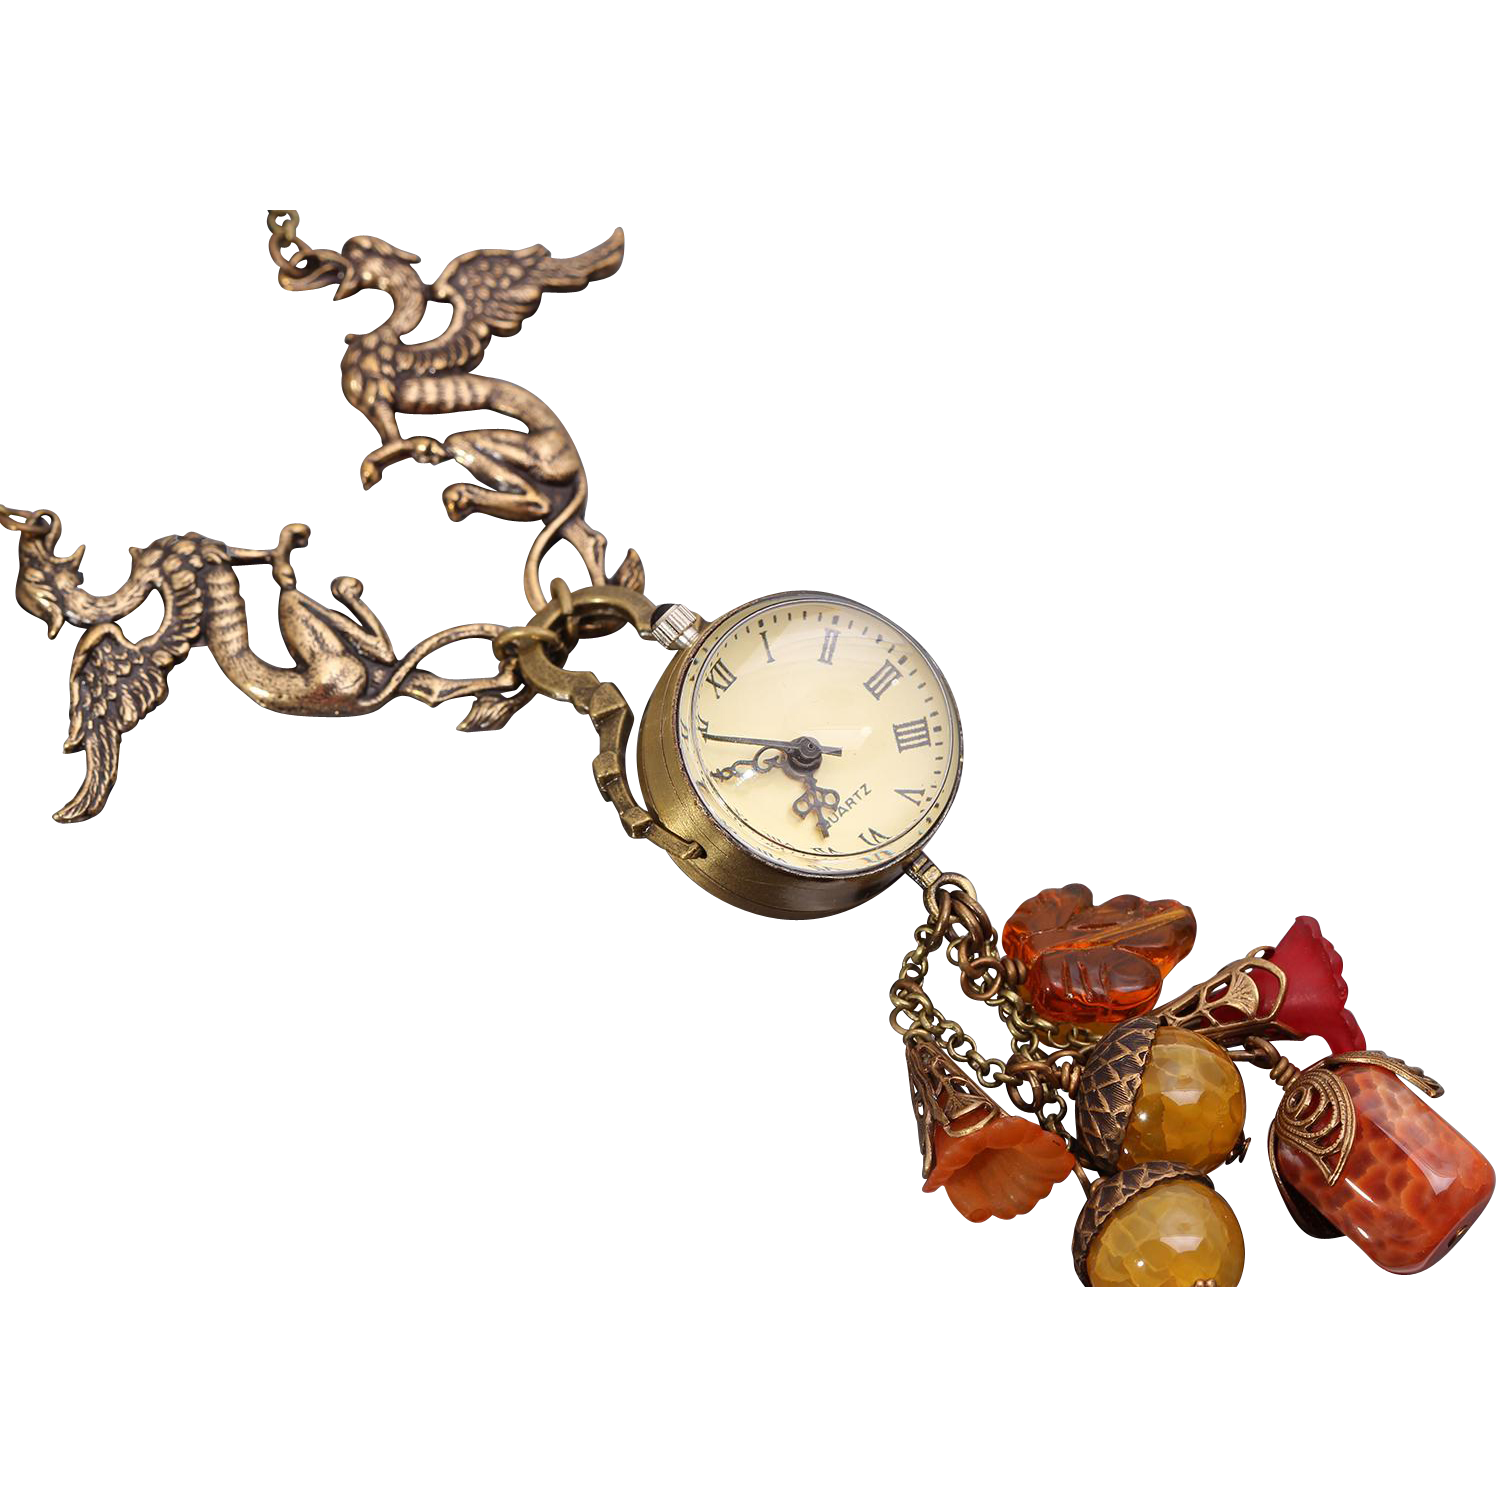 Watch Necklace Watch Women Steampunk Watch Necklace